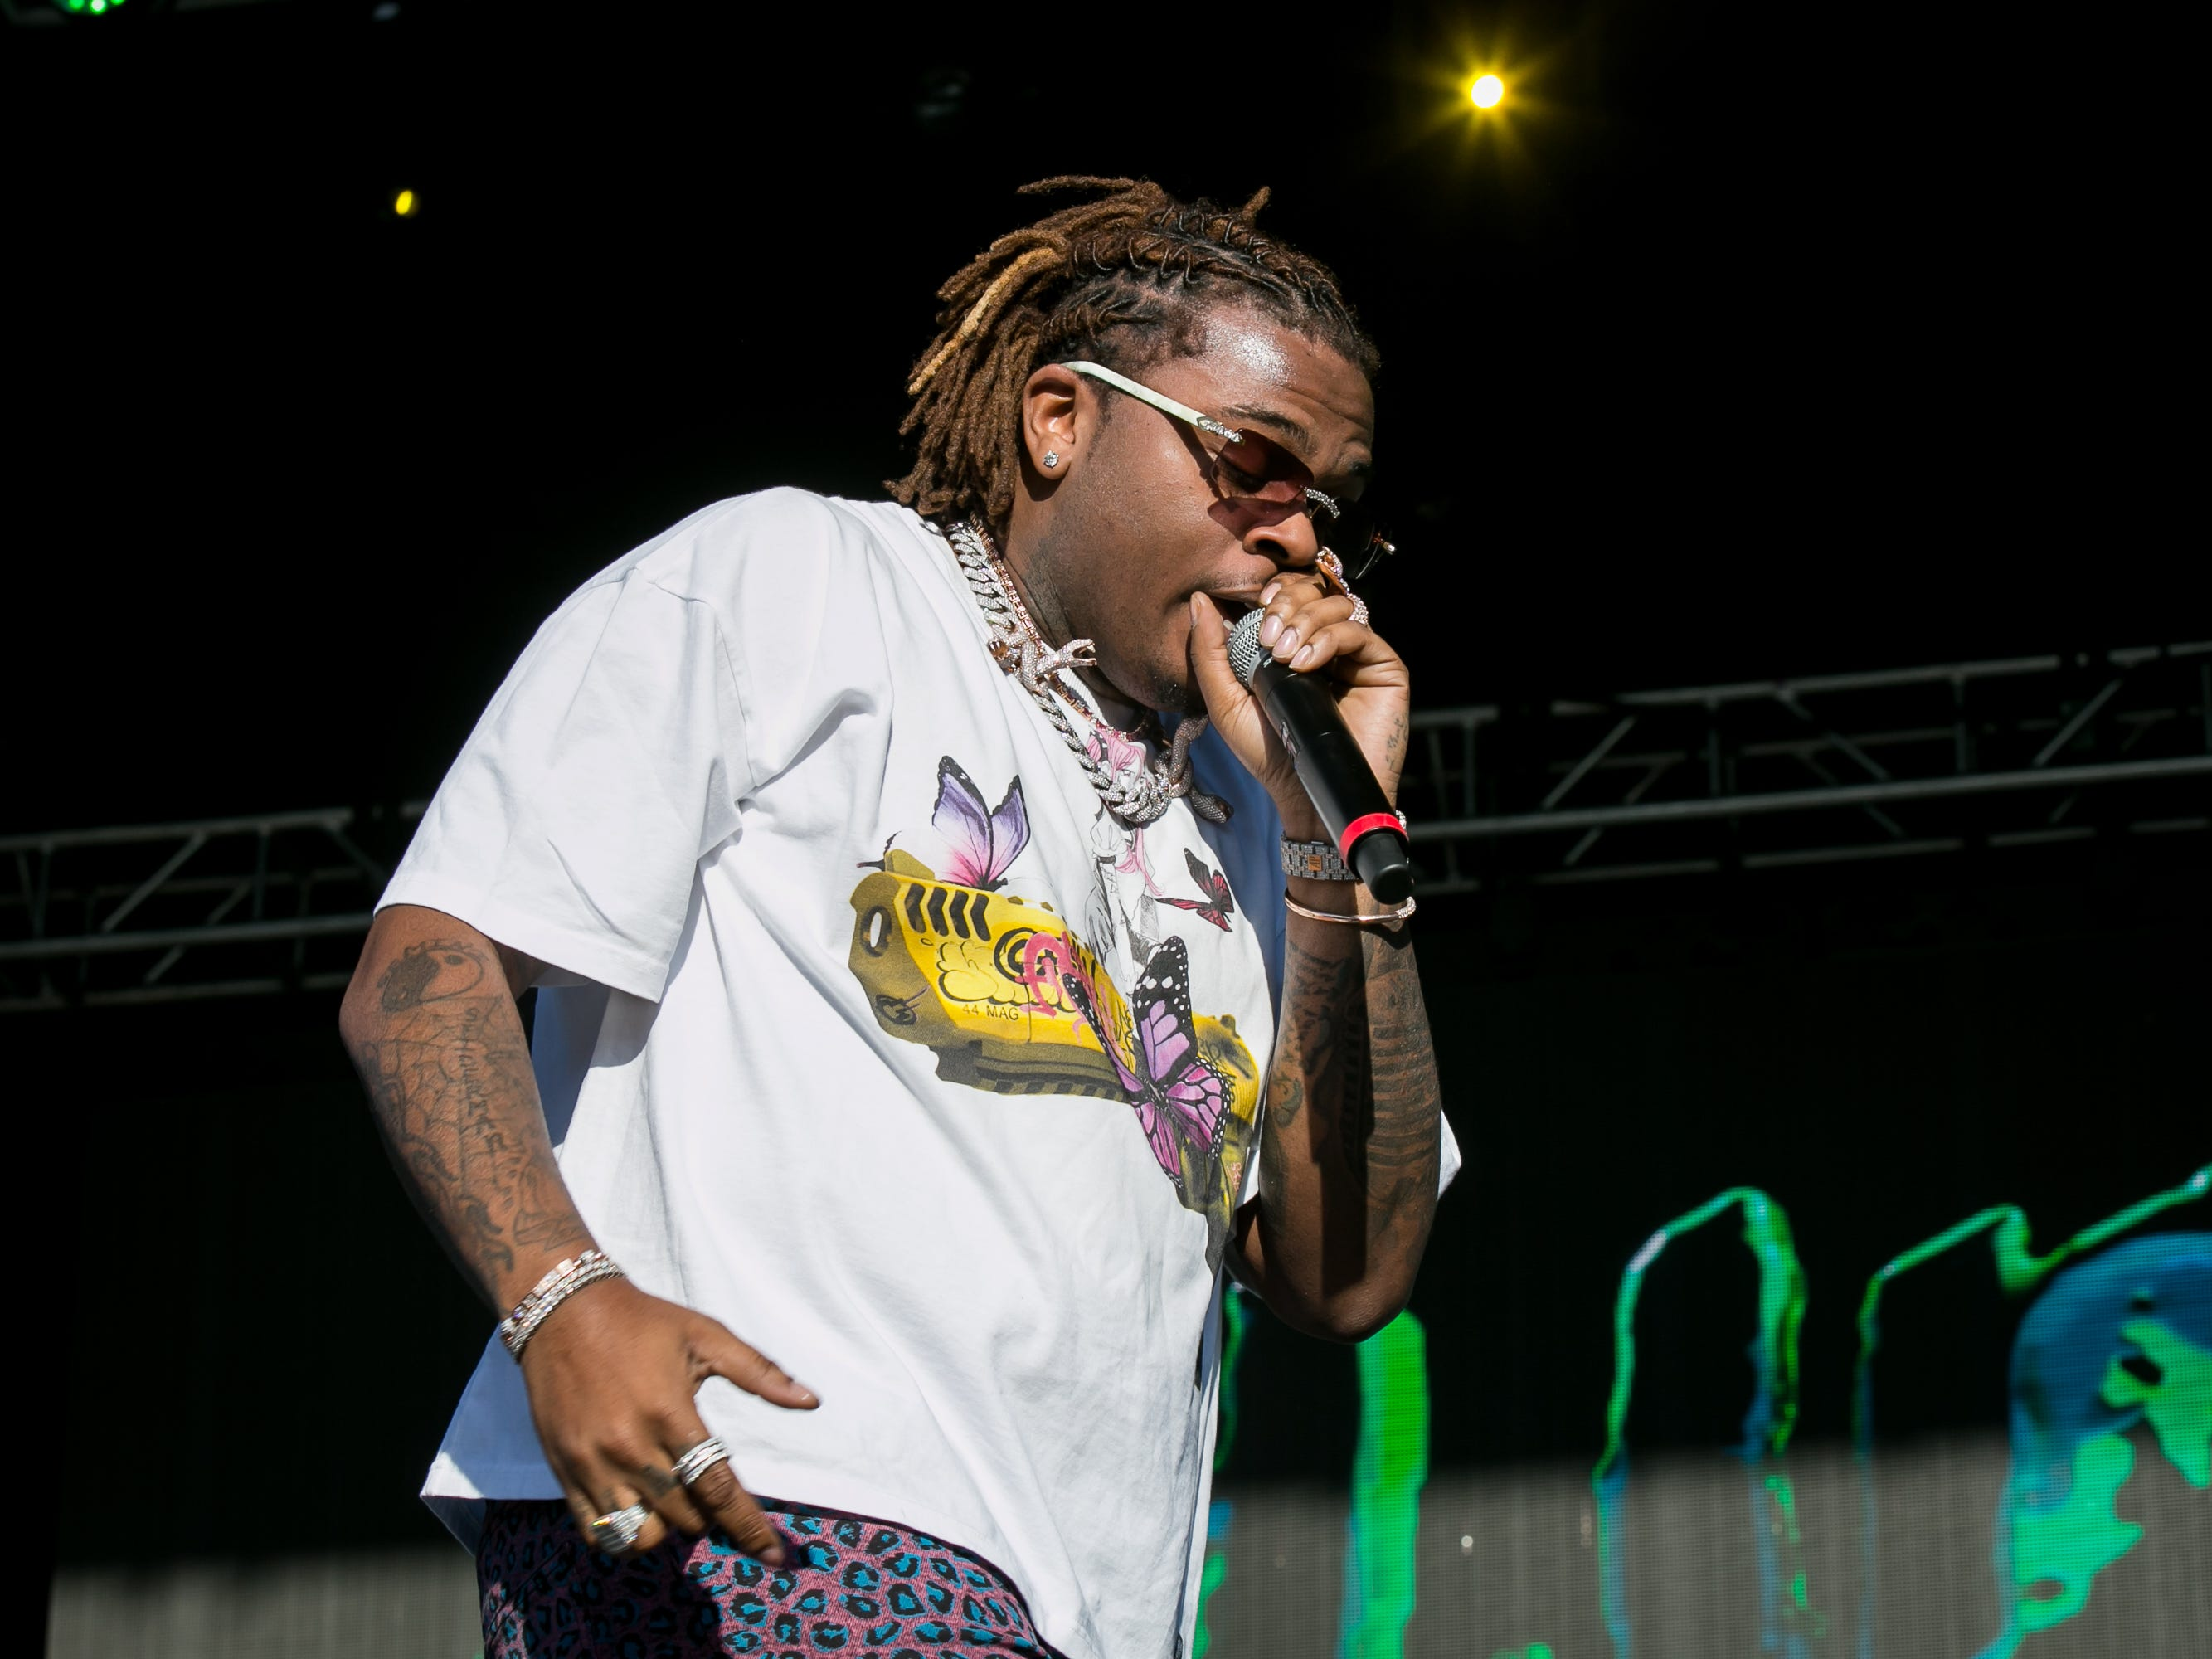 Gunna performed at Pot of Gold Music Festival at Steele Indian School Park on Saturday, March 16, 2019.